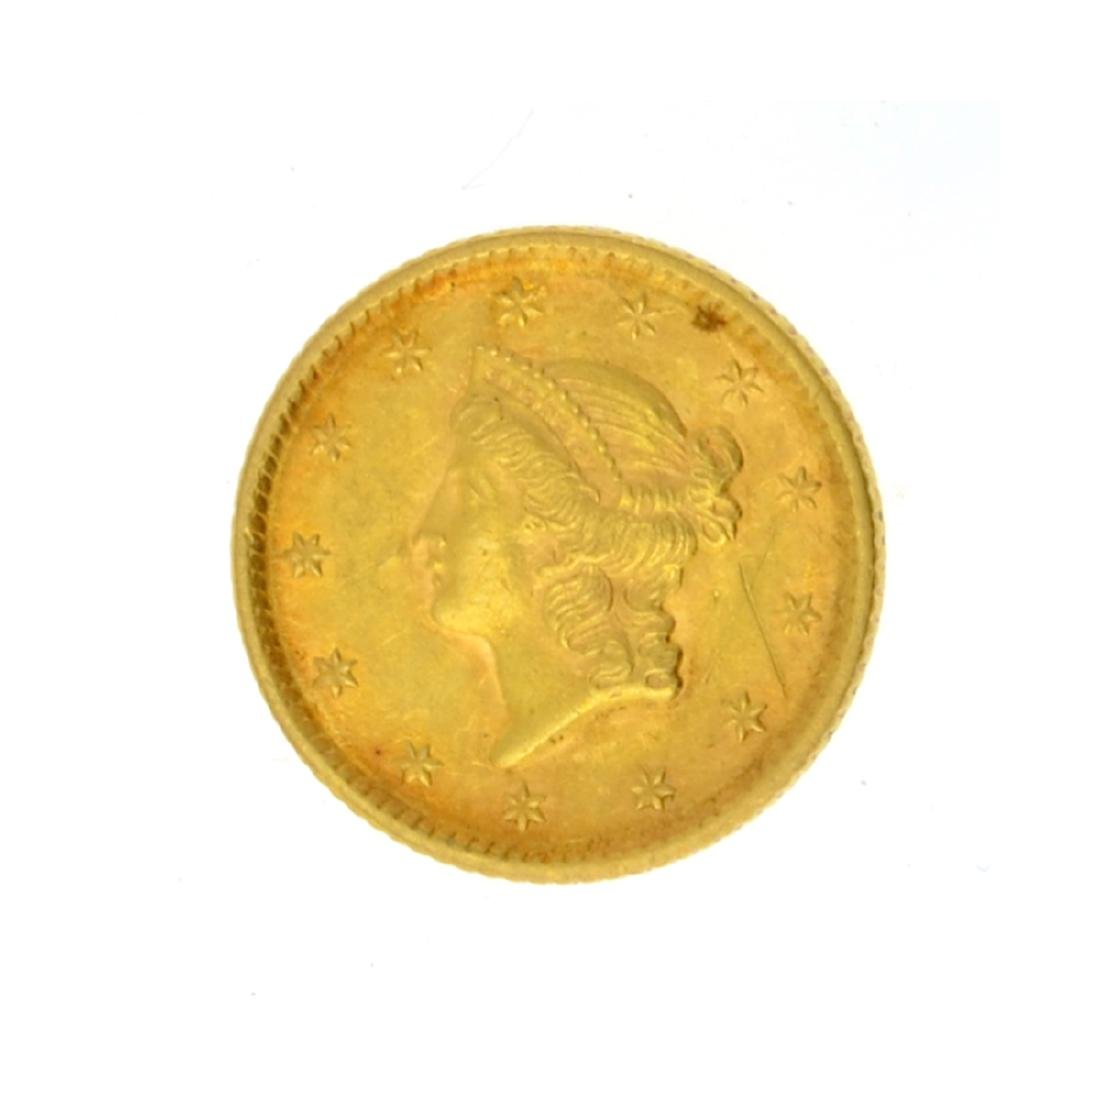 1852 $1 Liberty Head Gold Coin